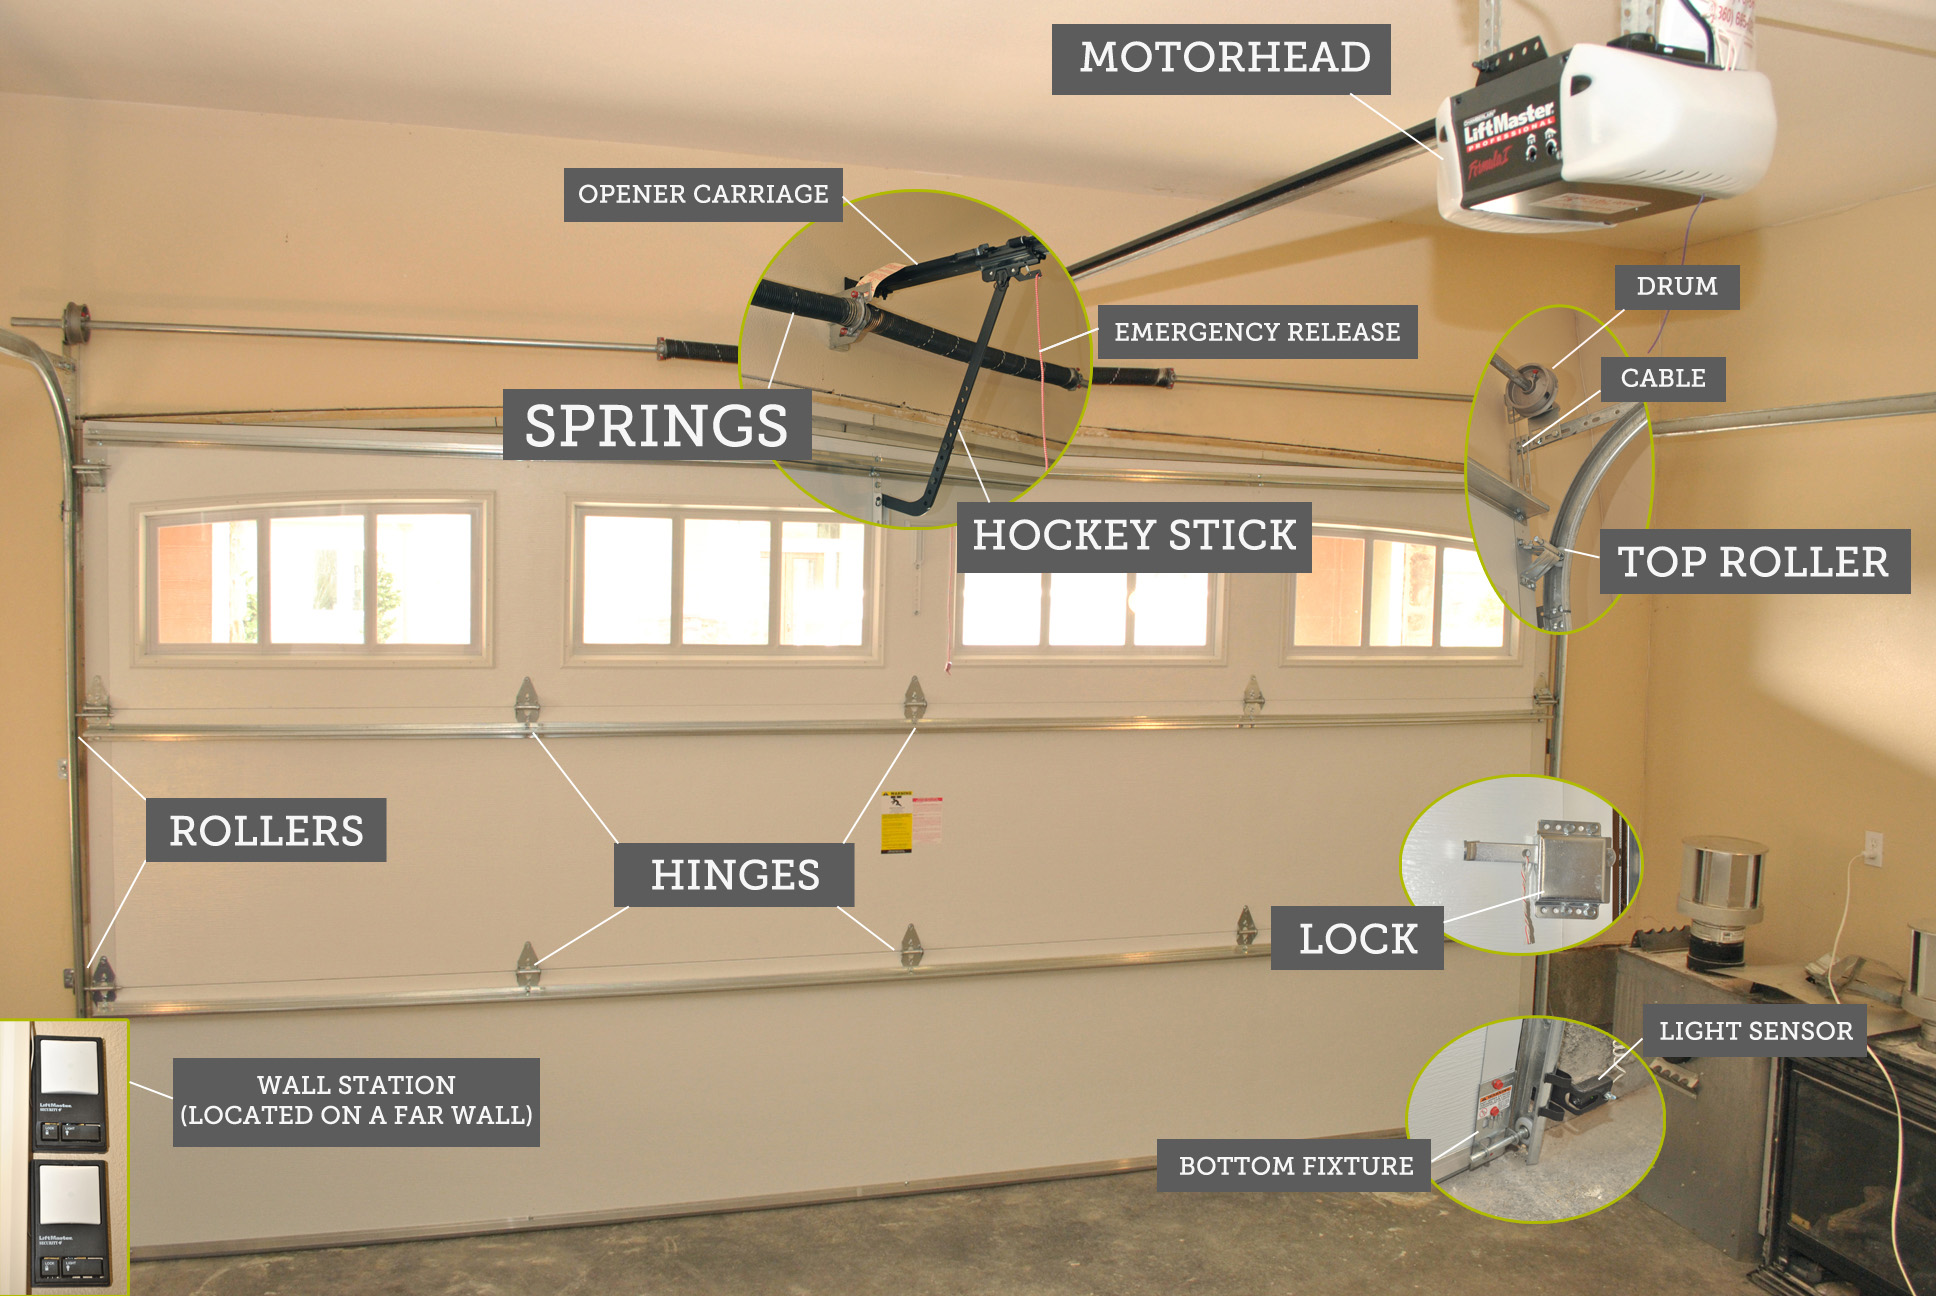 How Much Garage Door Opener Cost - Wageuzi